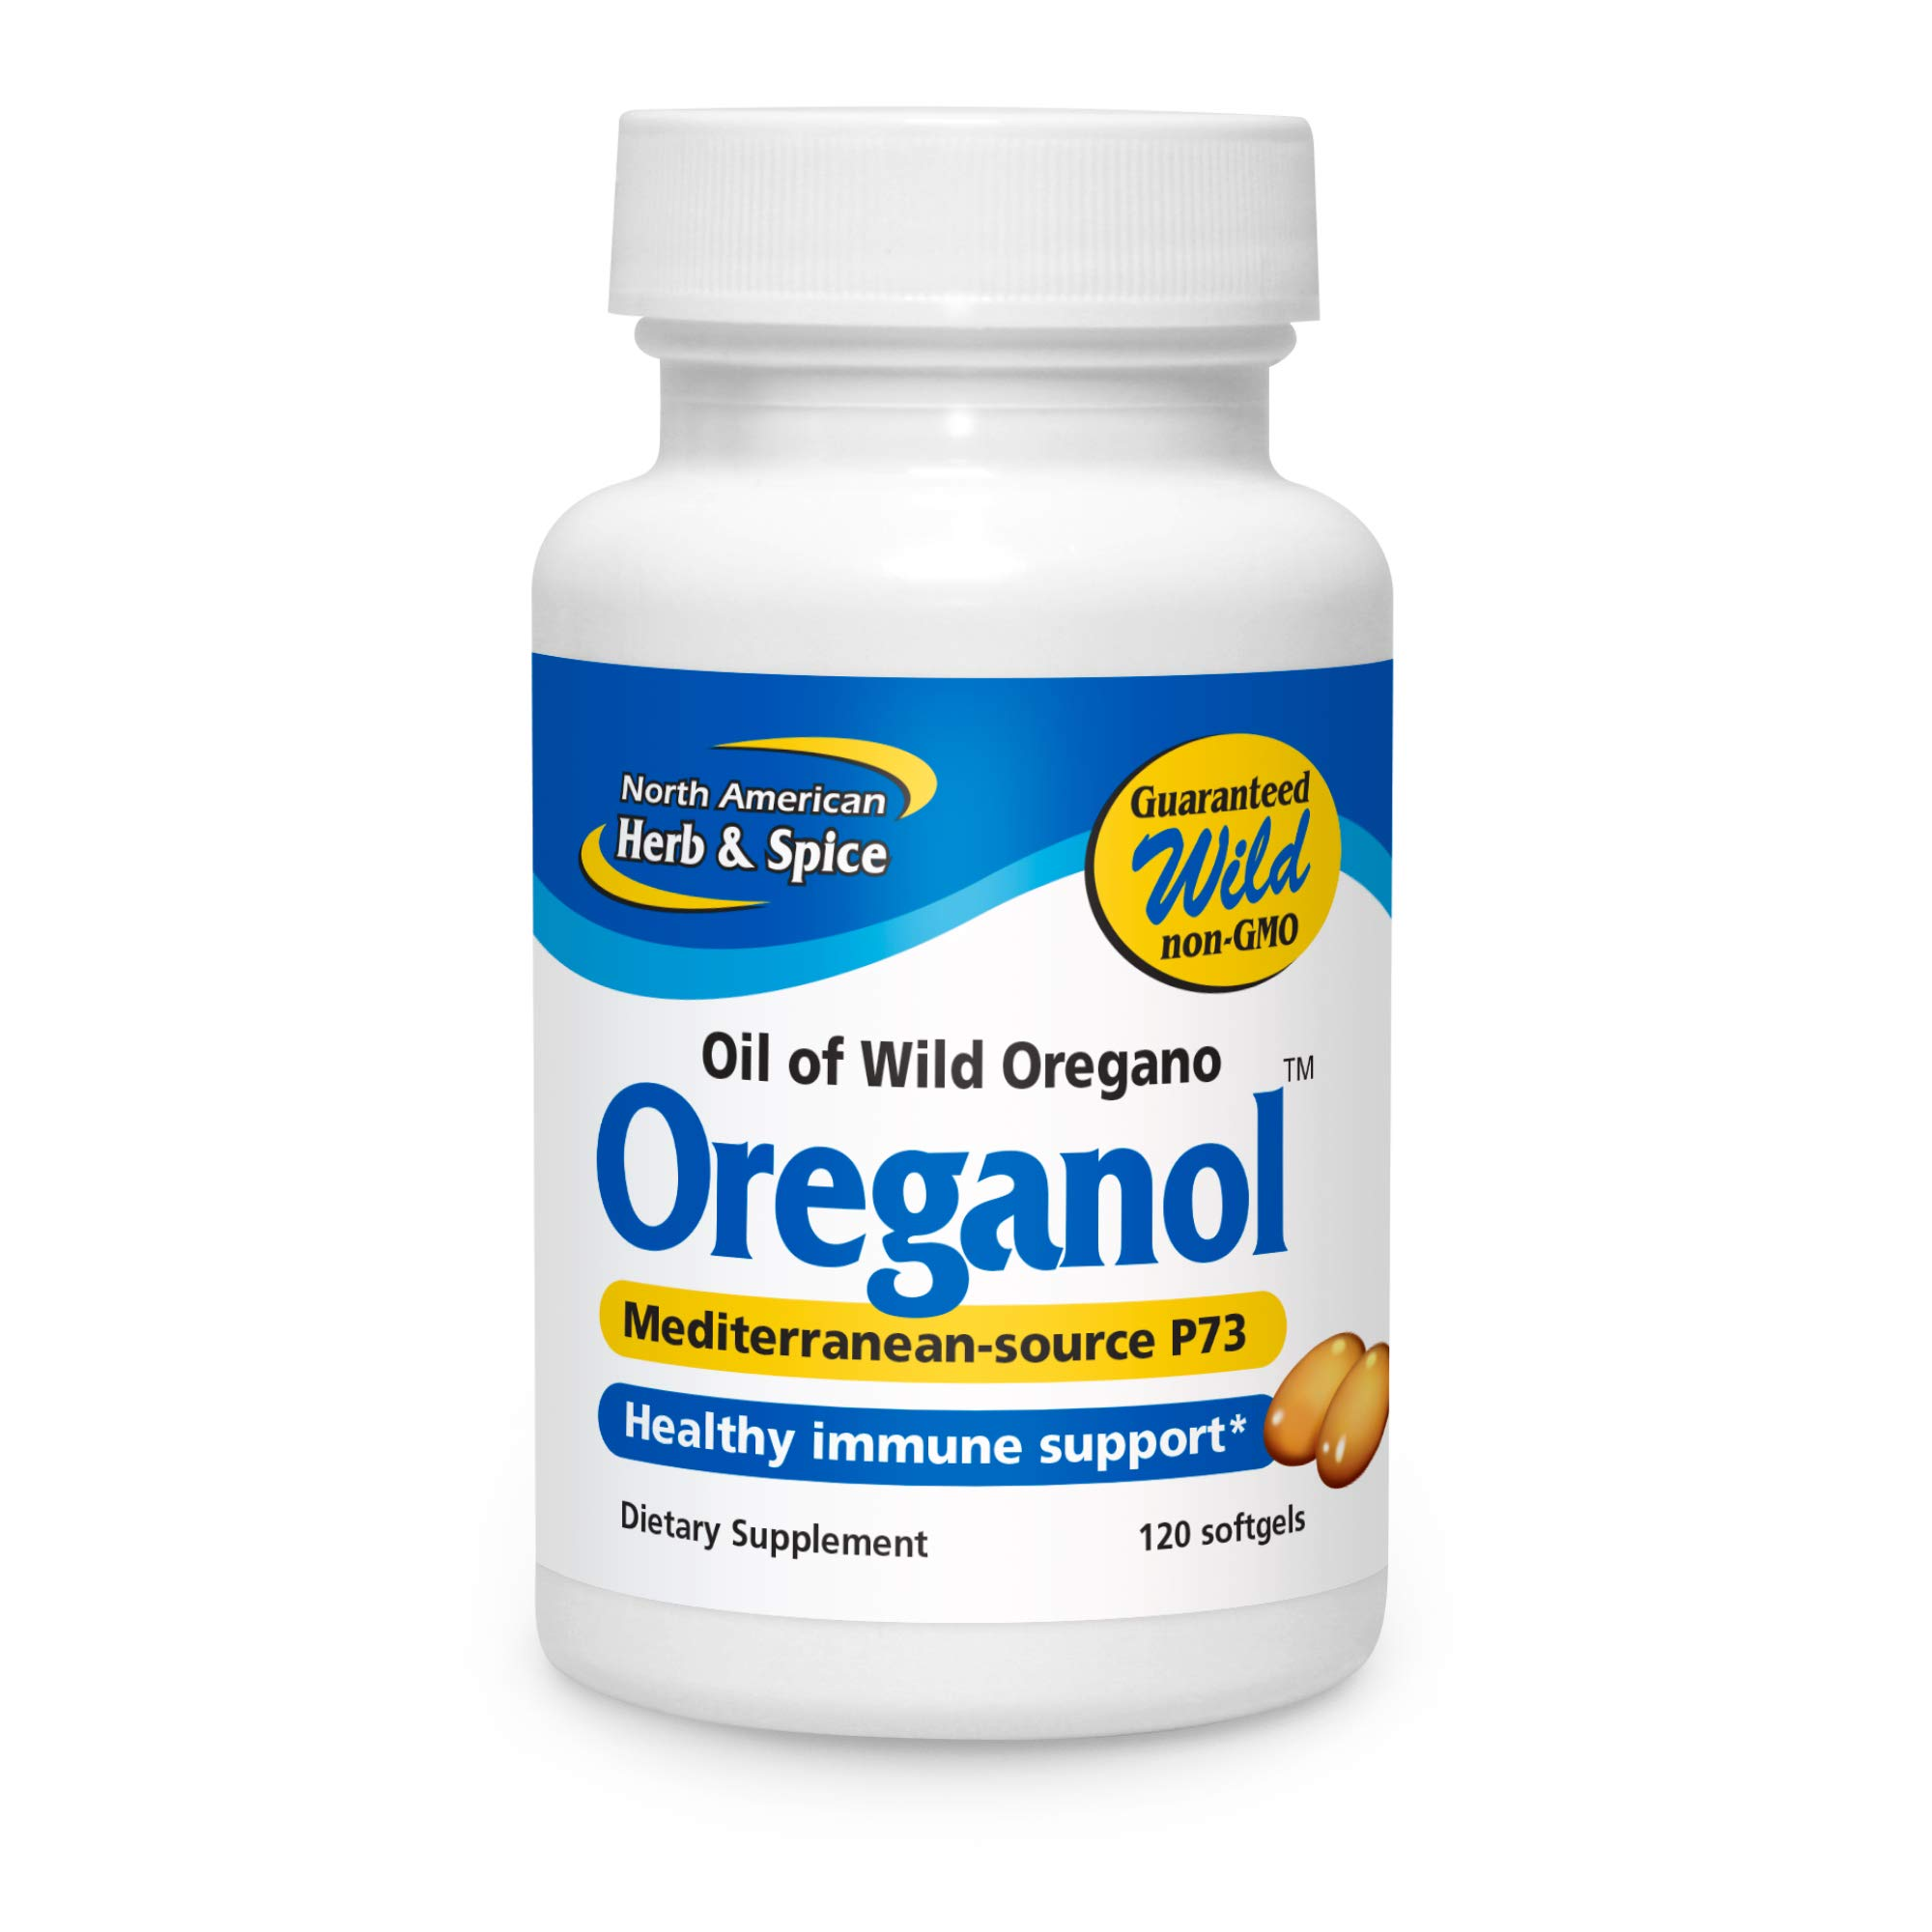 North American Herb Spice Oreganol P73 120 Softgels Immune System Support Unprocessed Vegan Friendly Wild Oregano Mediterranean Source Non Gmo 120 Servings Buy Online In Cayman Islands At Cayman Desertcart Com Productid 56038557